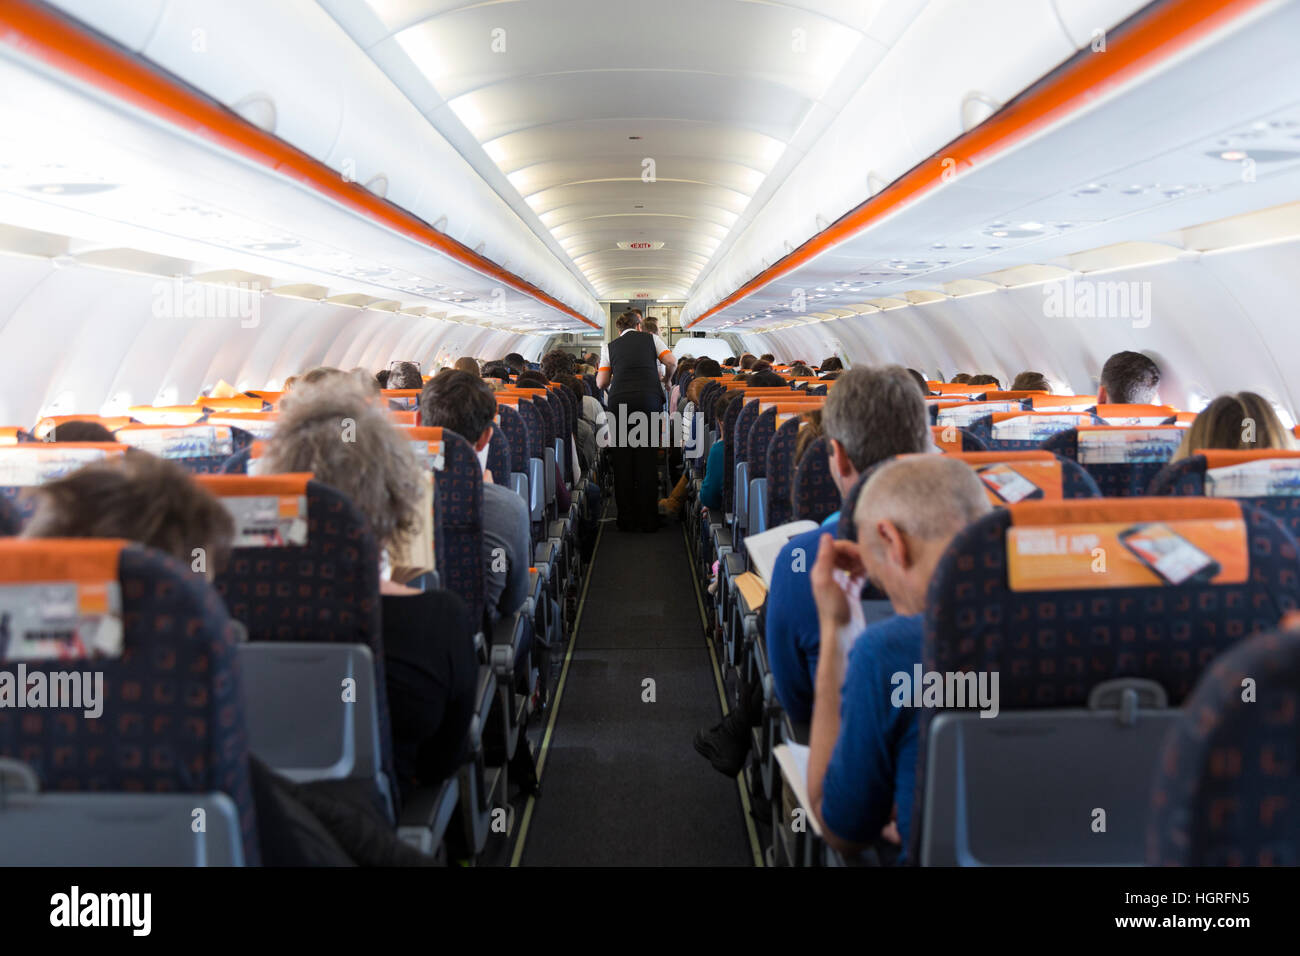 The Cabin Aisle On An Easyjey Airbus A320 Passenger Plane